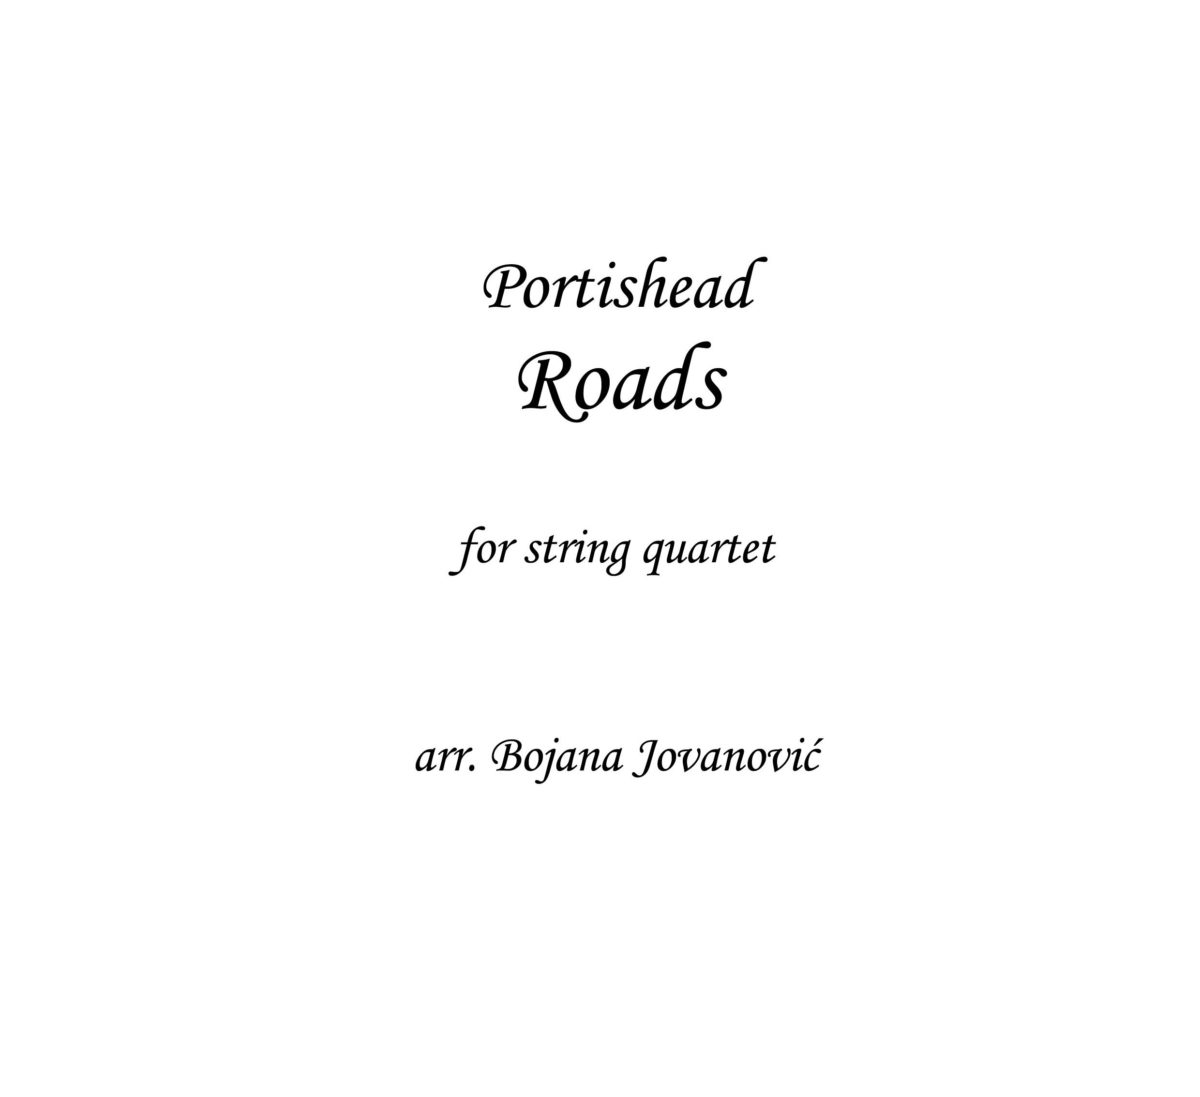 Roads (Portishead) - Sheet Music